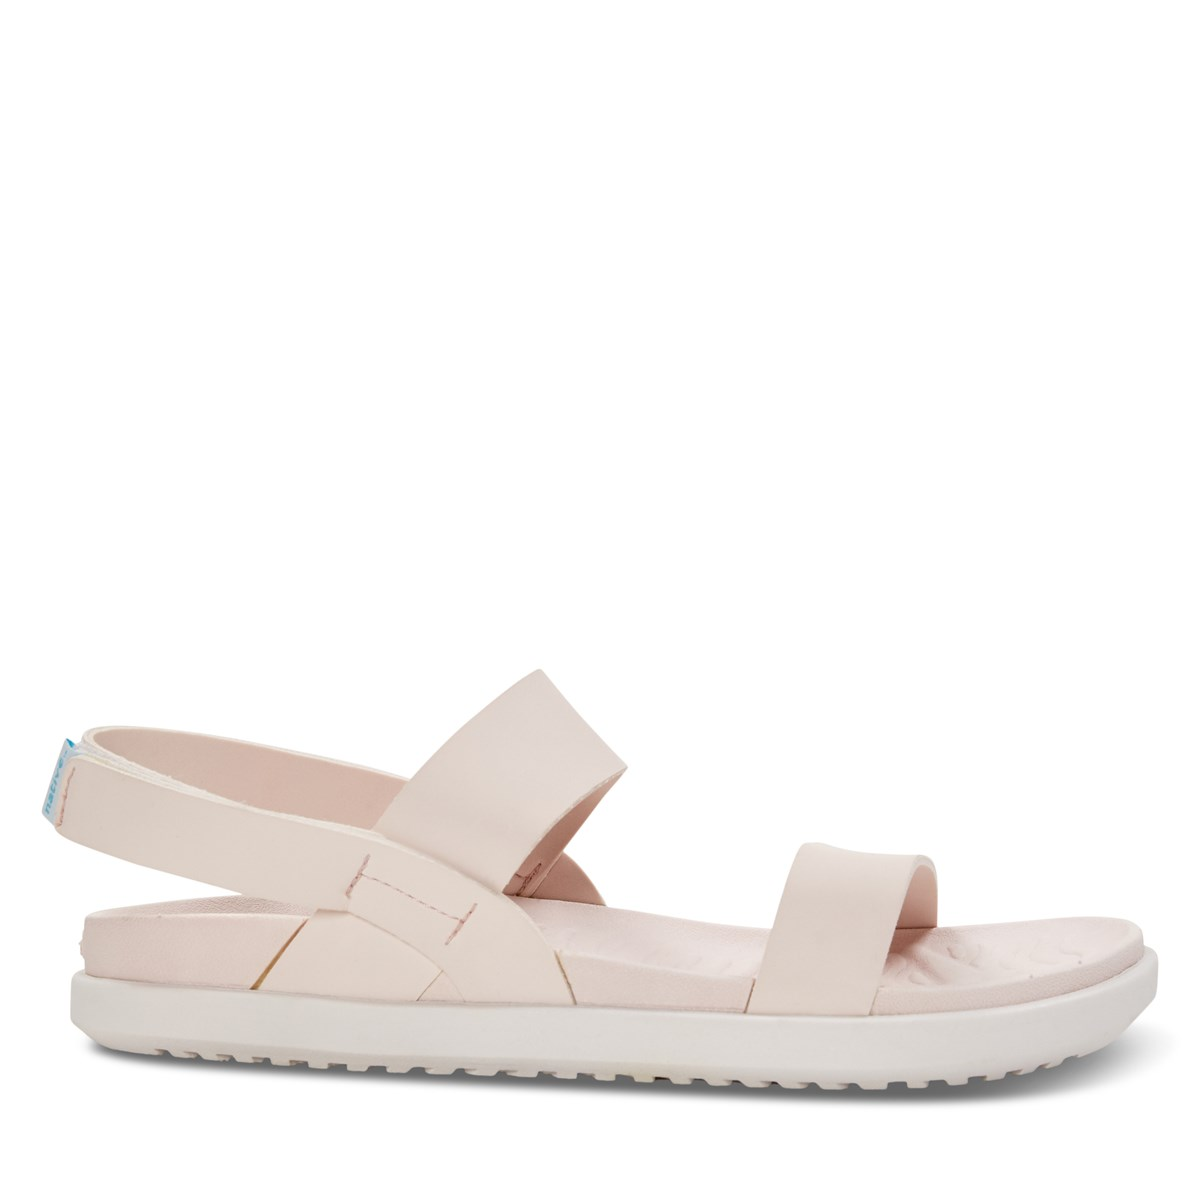 Women's Ellis Strapped Sandals in Pink